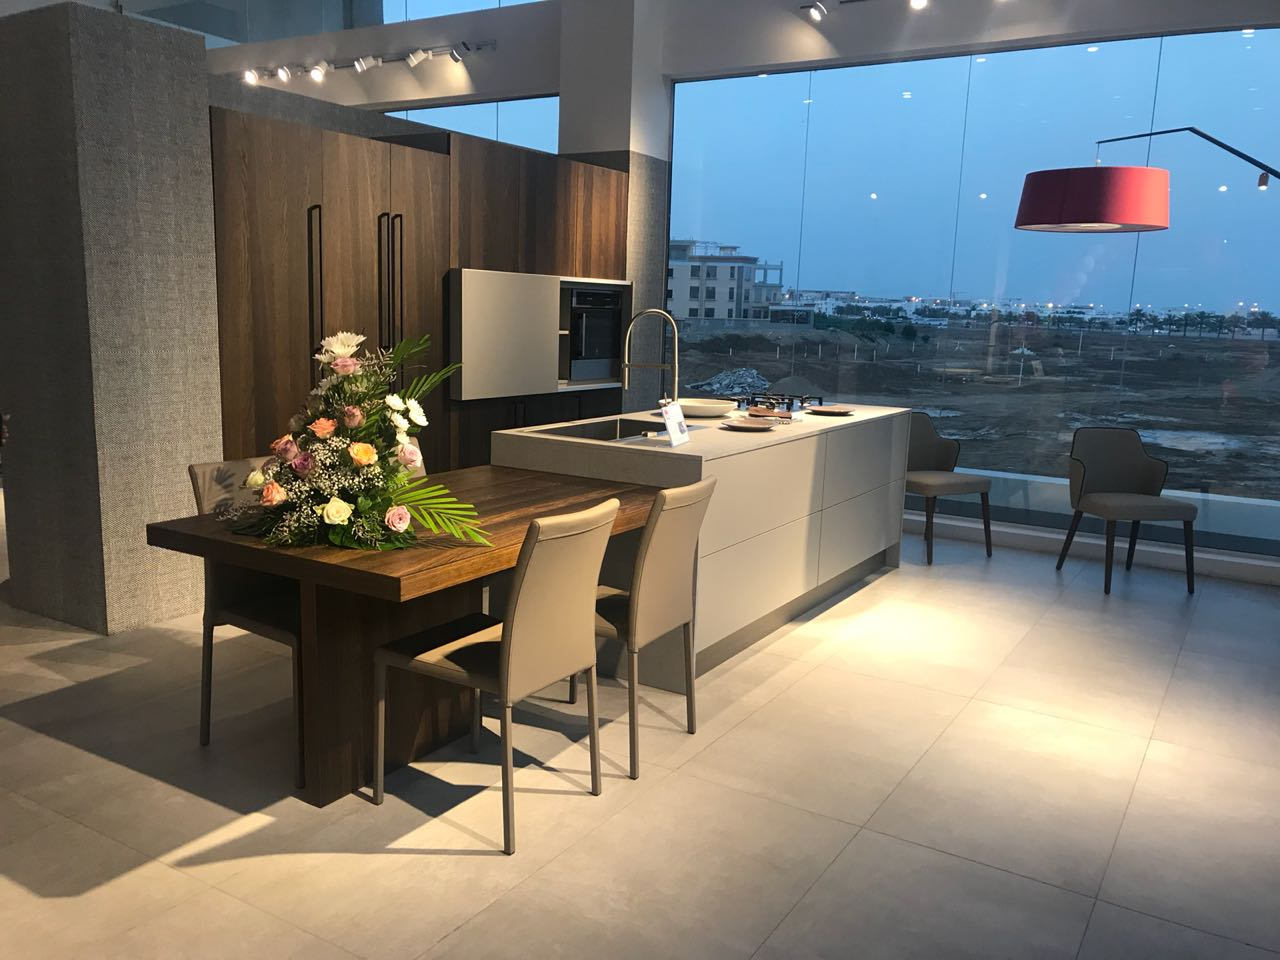 Cucine Lube opens a store in Oman - Home Appliances World